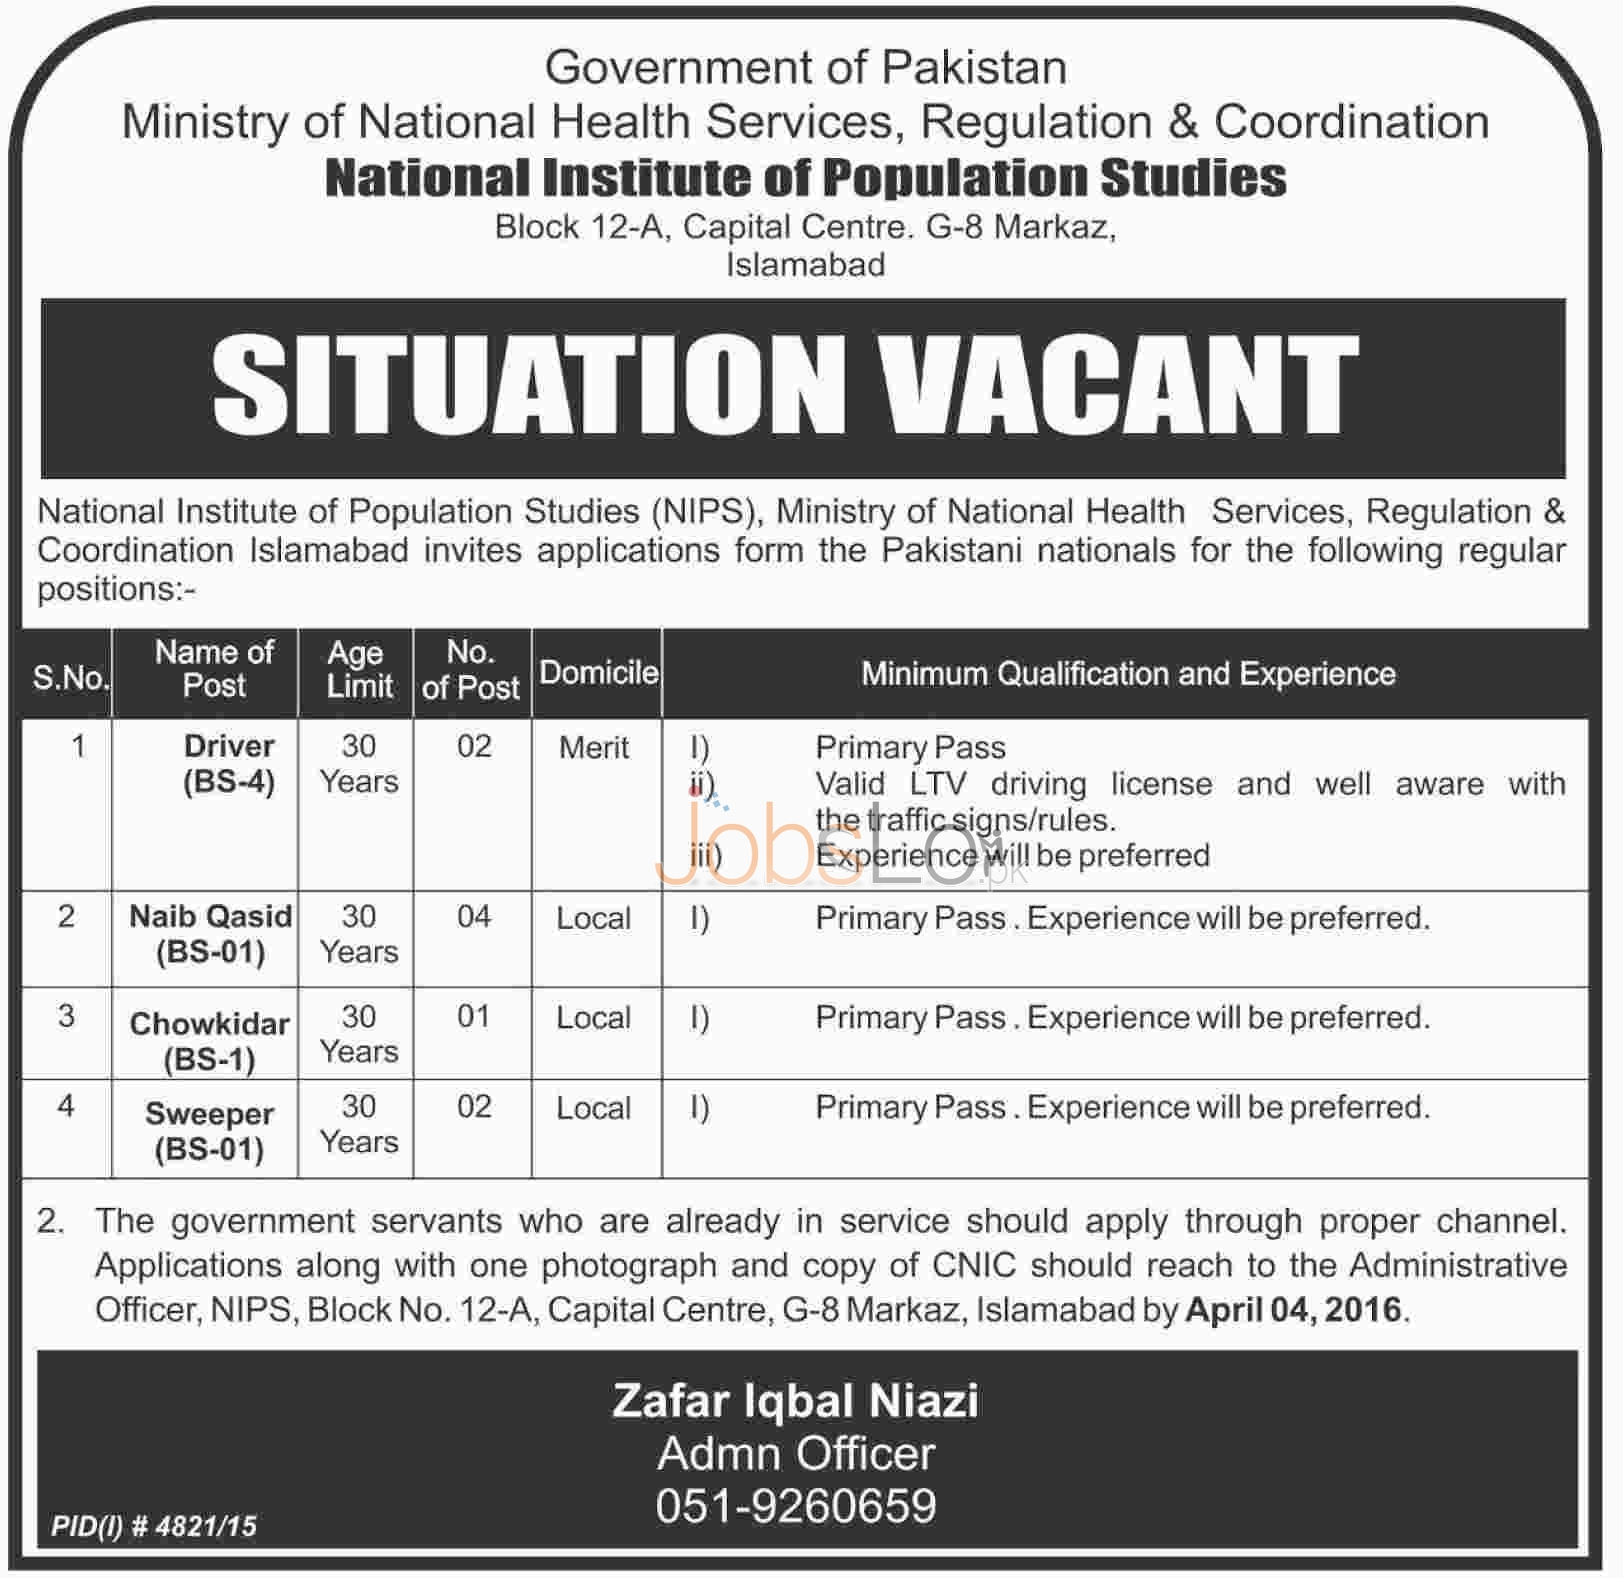 Situations Vacant for Driver & Naib Qasid 2016 in Islamabad Ministry of National Health Sciences NIPS